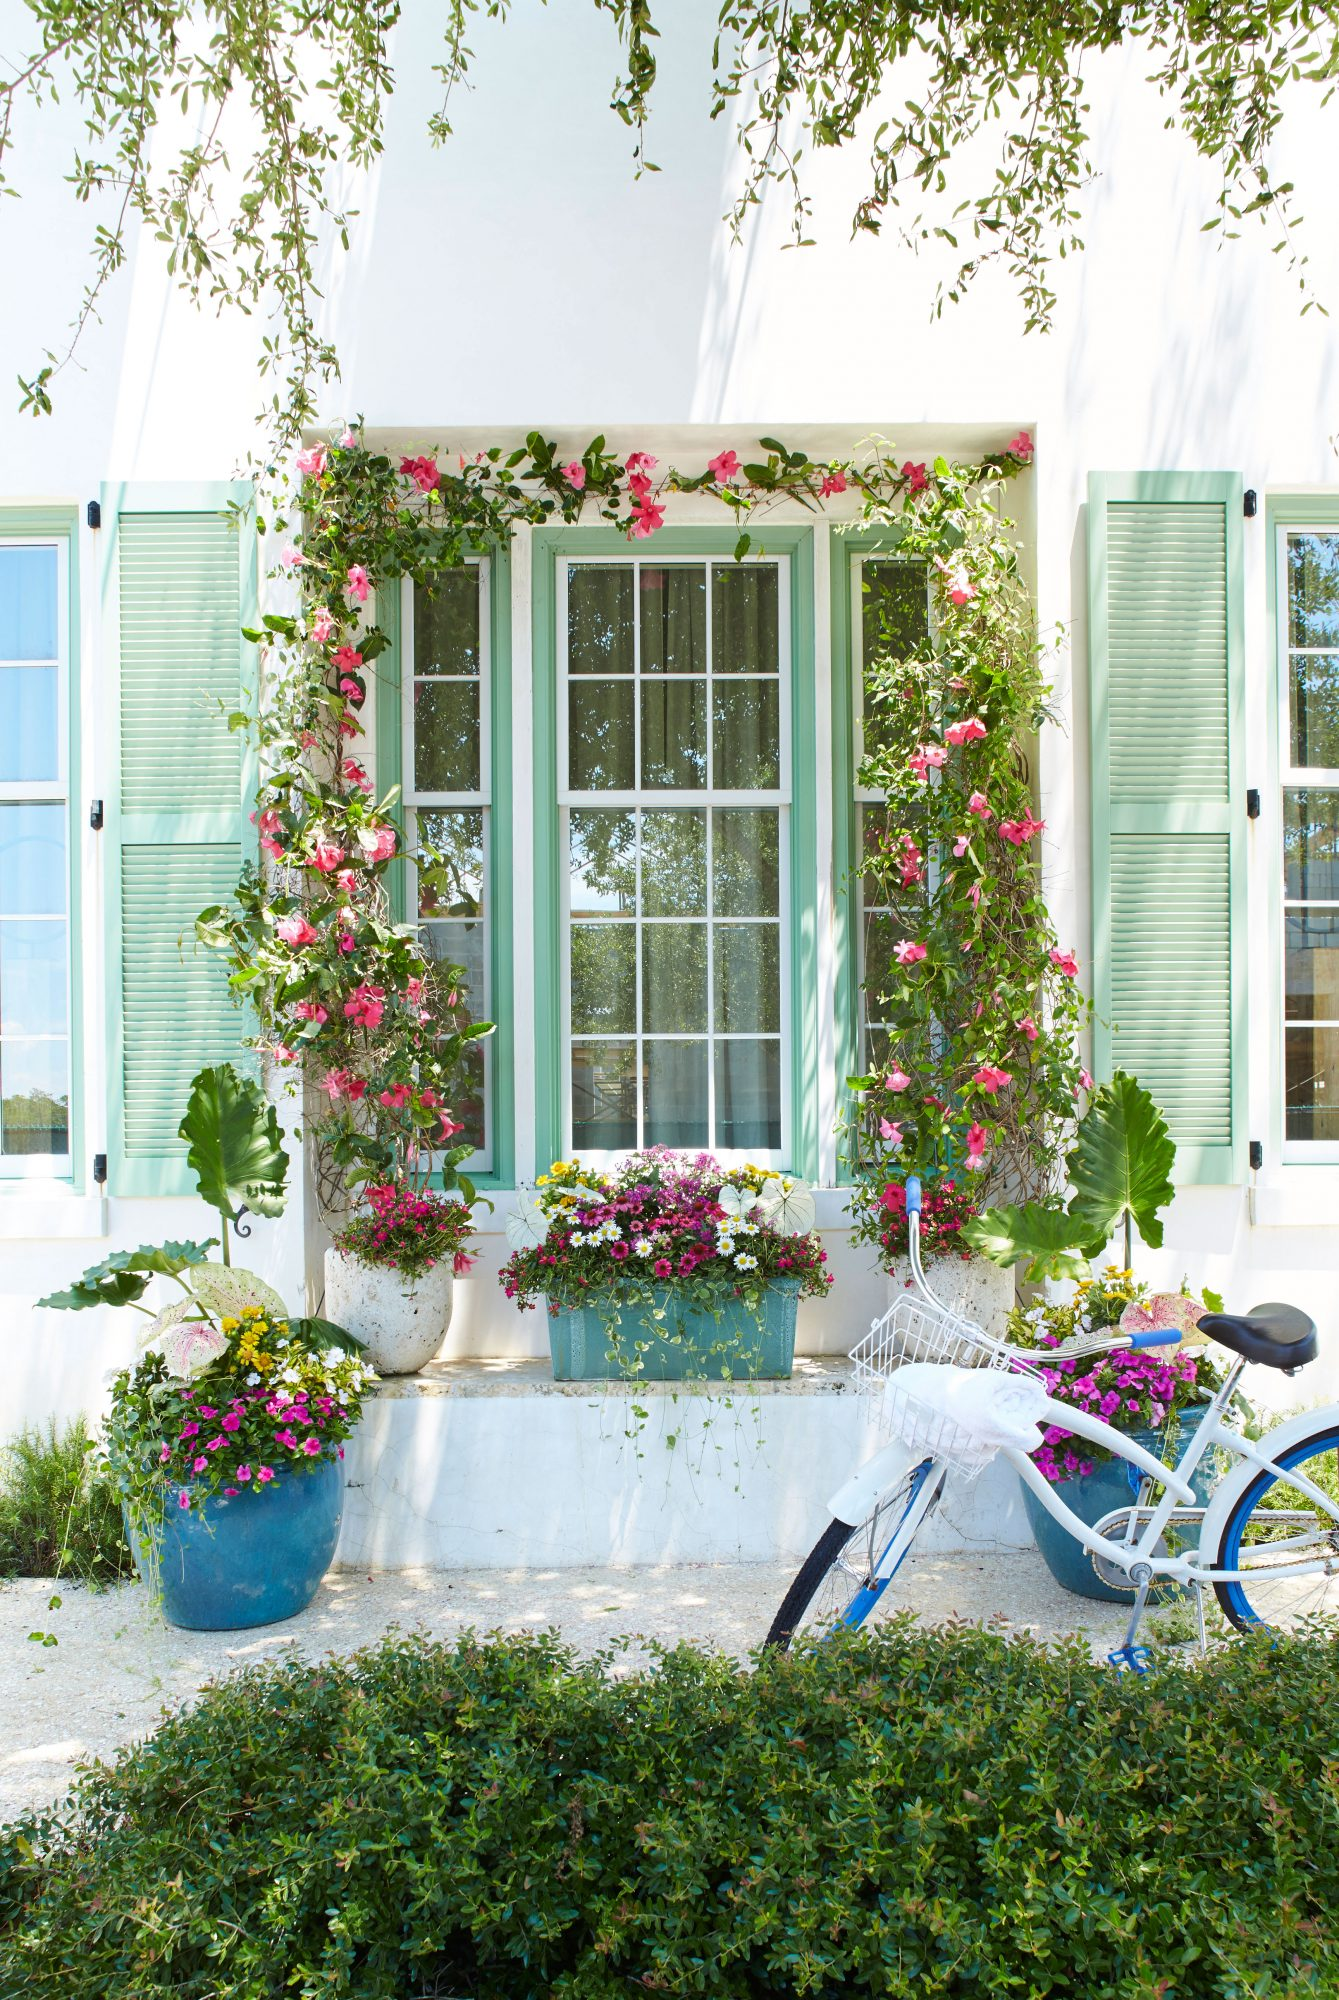 Green Shutter with Pink Flowers and Bicycle